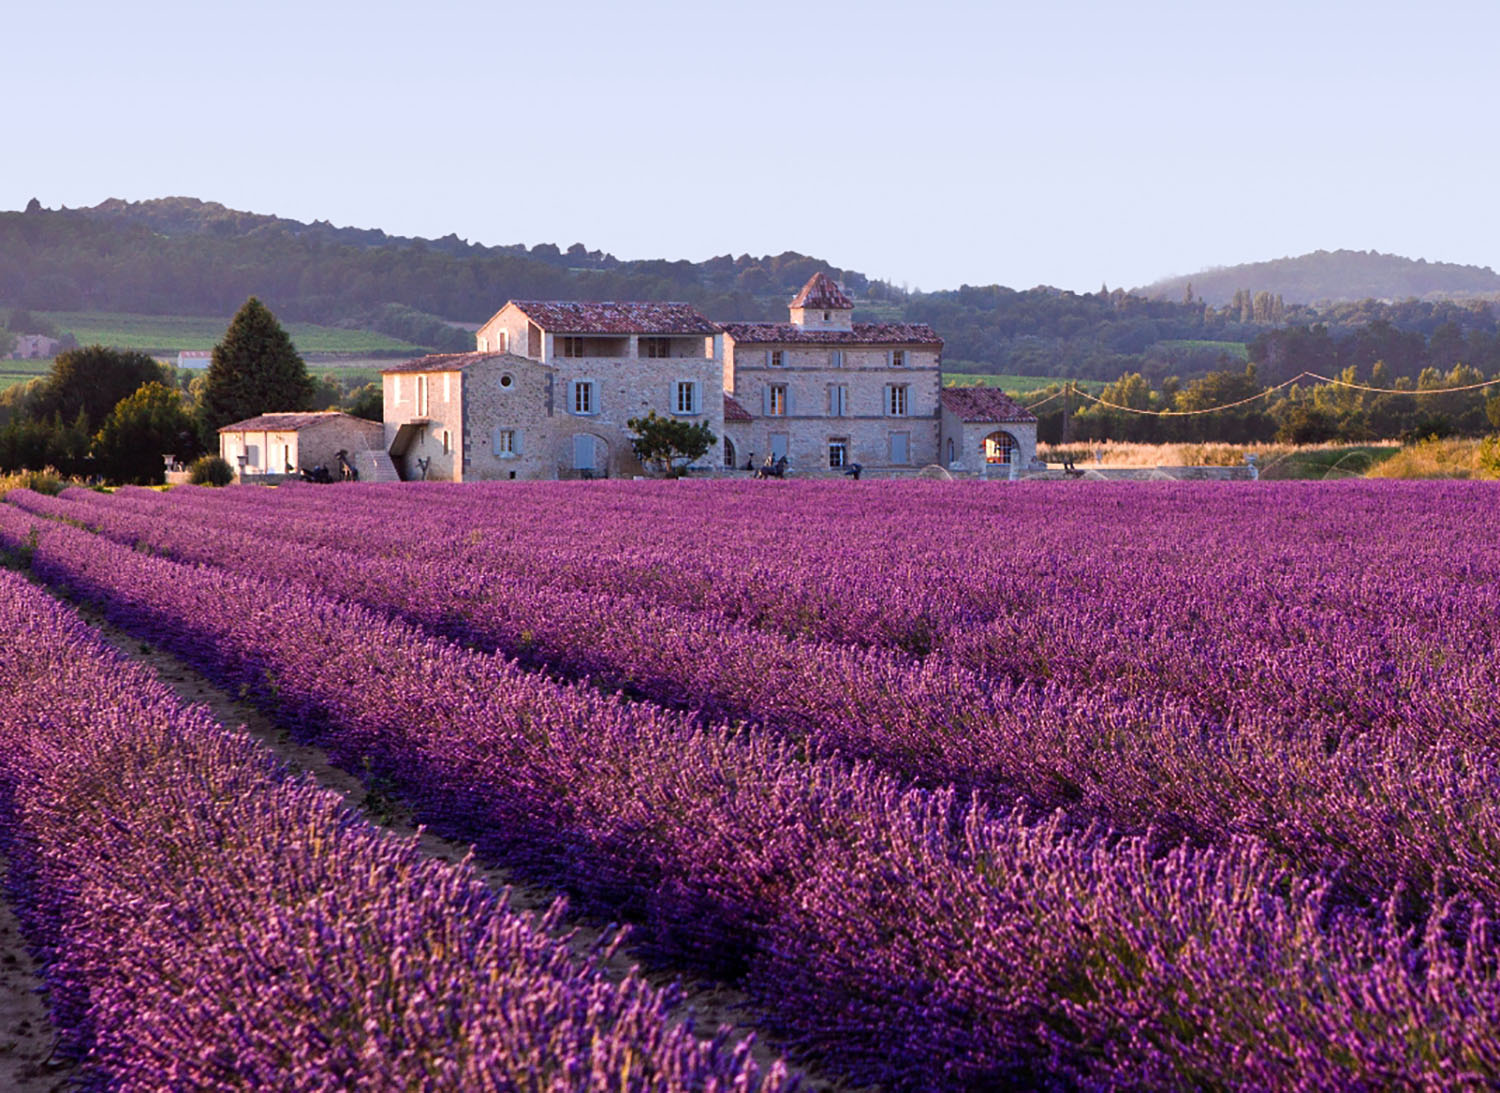 Fields of purple lavender growing in Provence, France